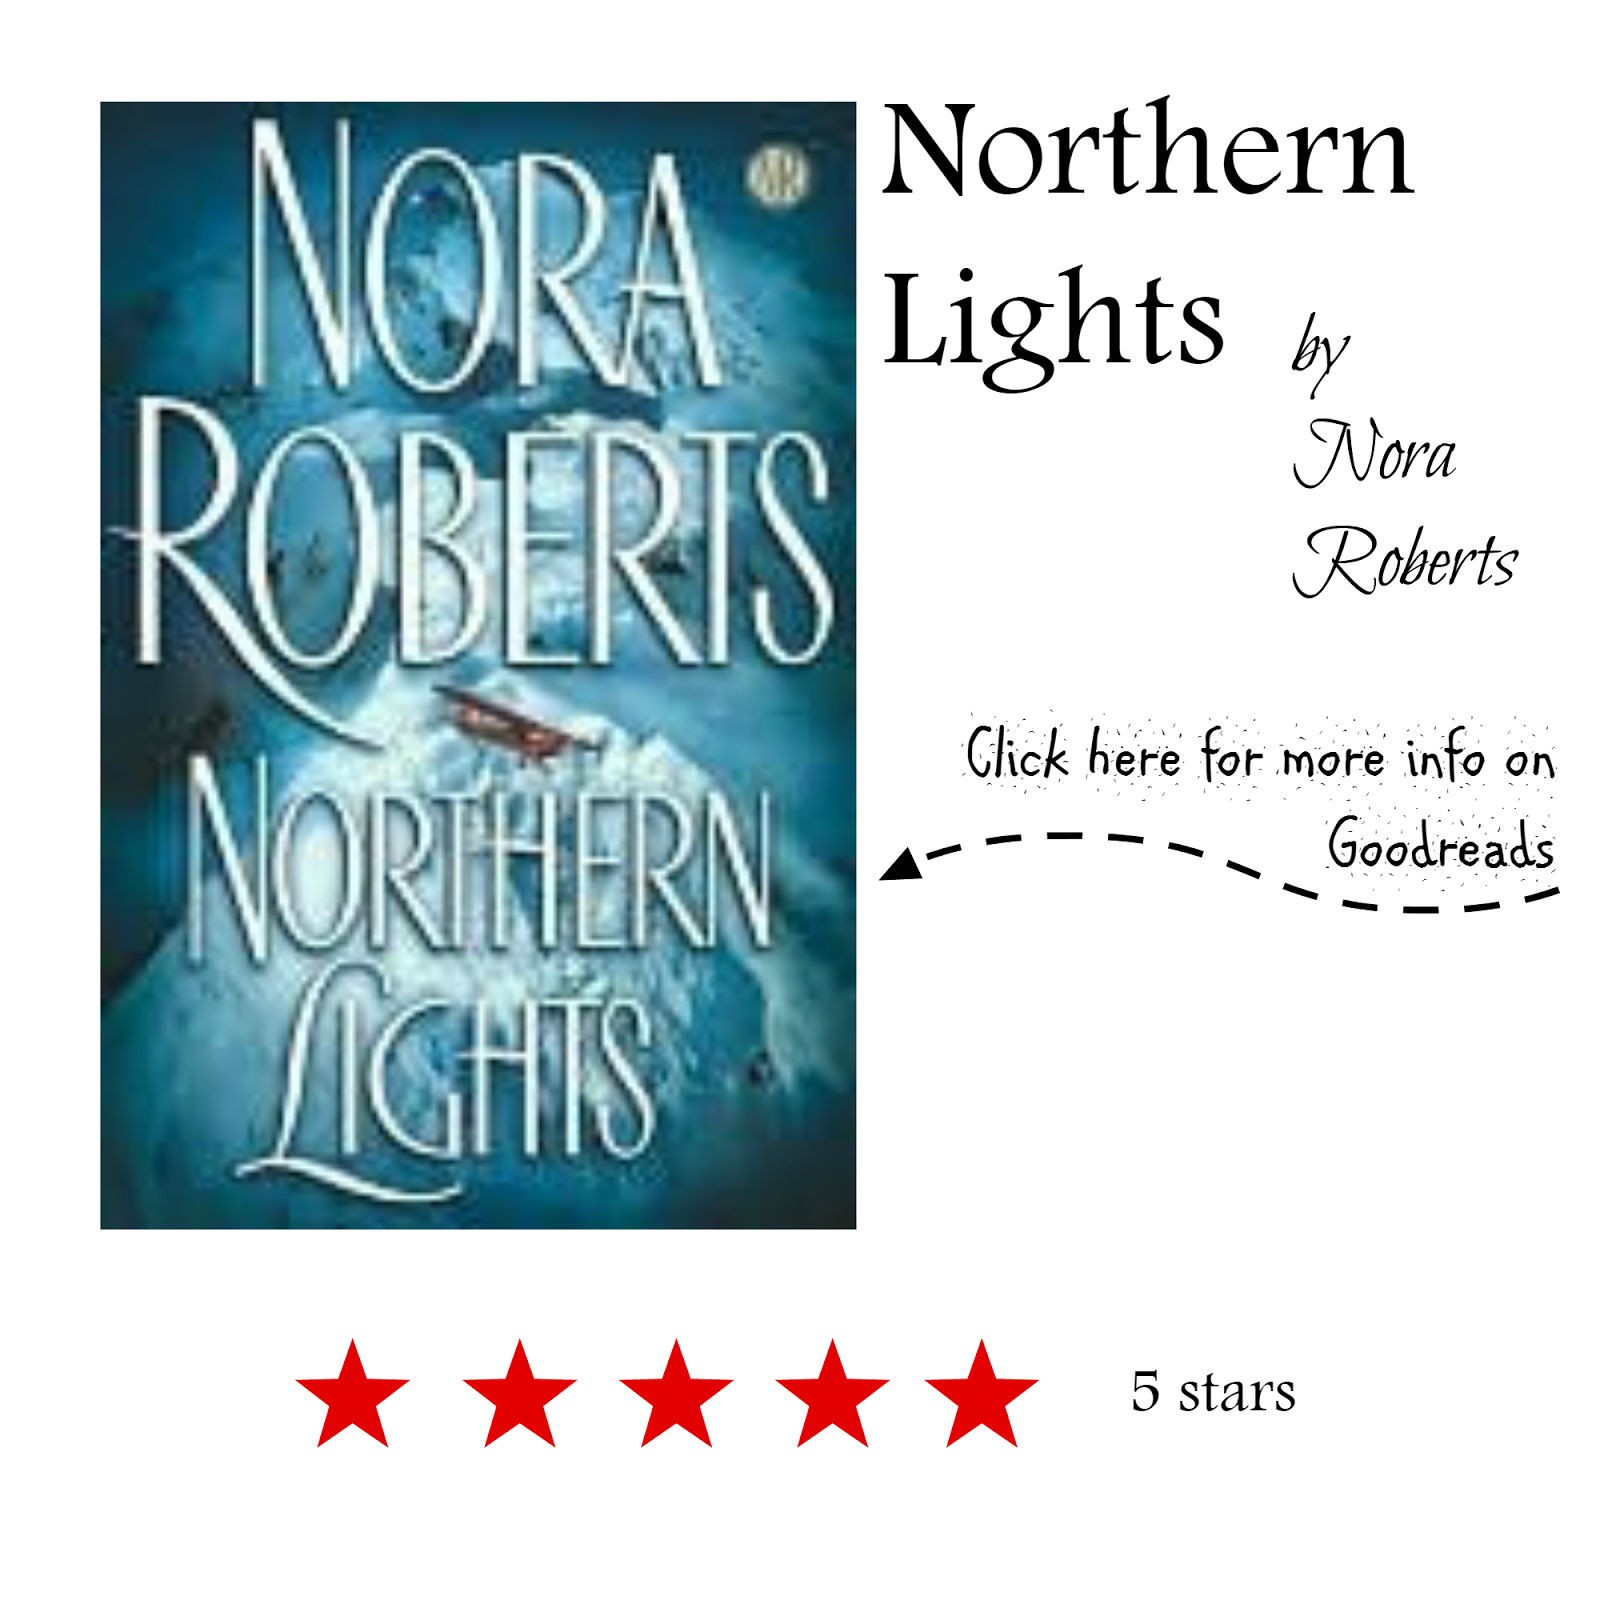 Book Review of Northern Lights by Nora Roberts